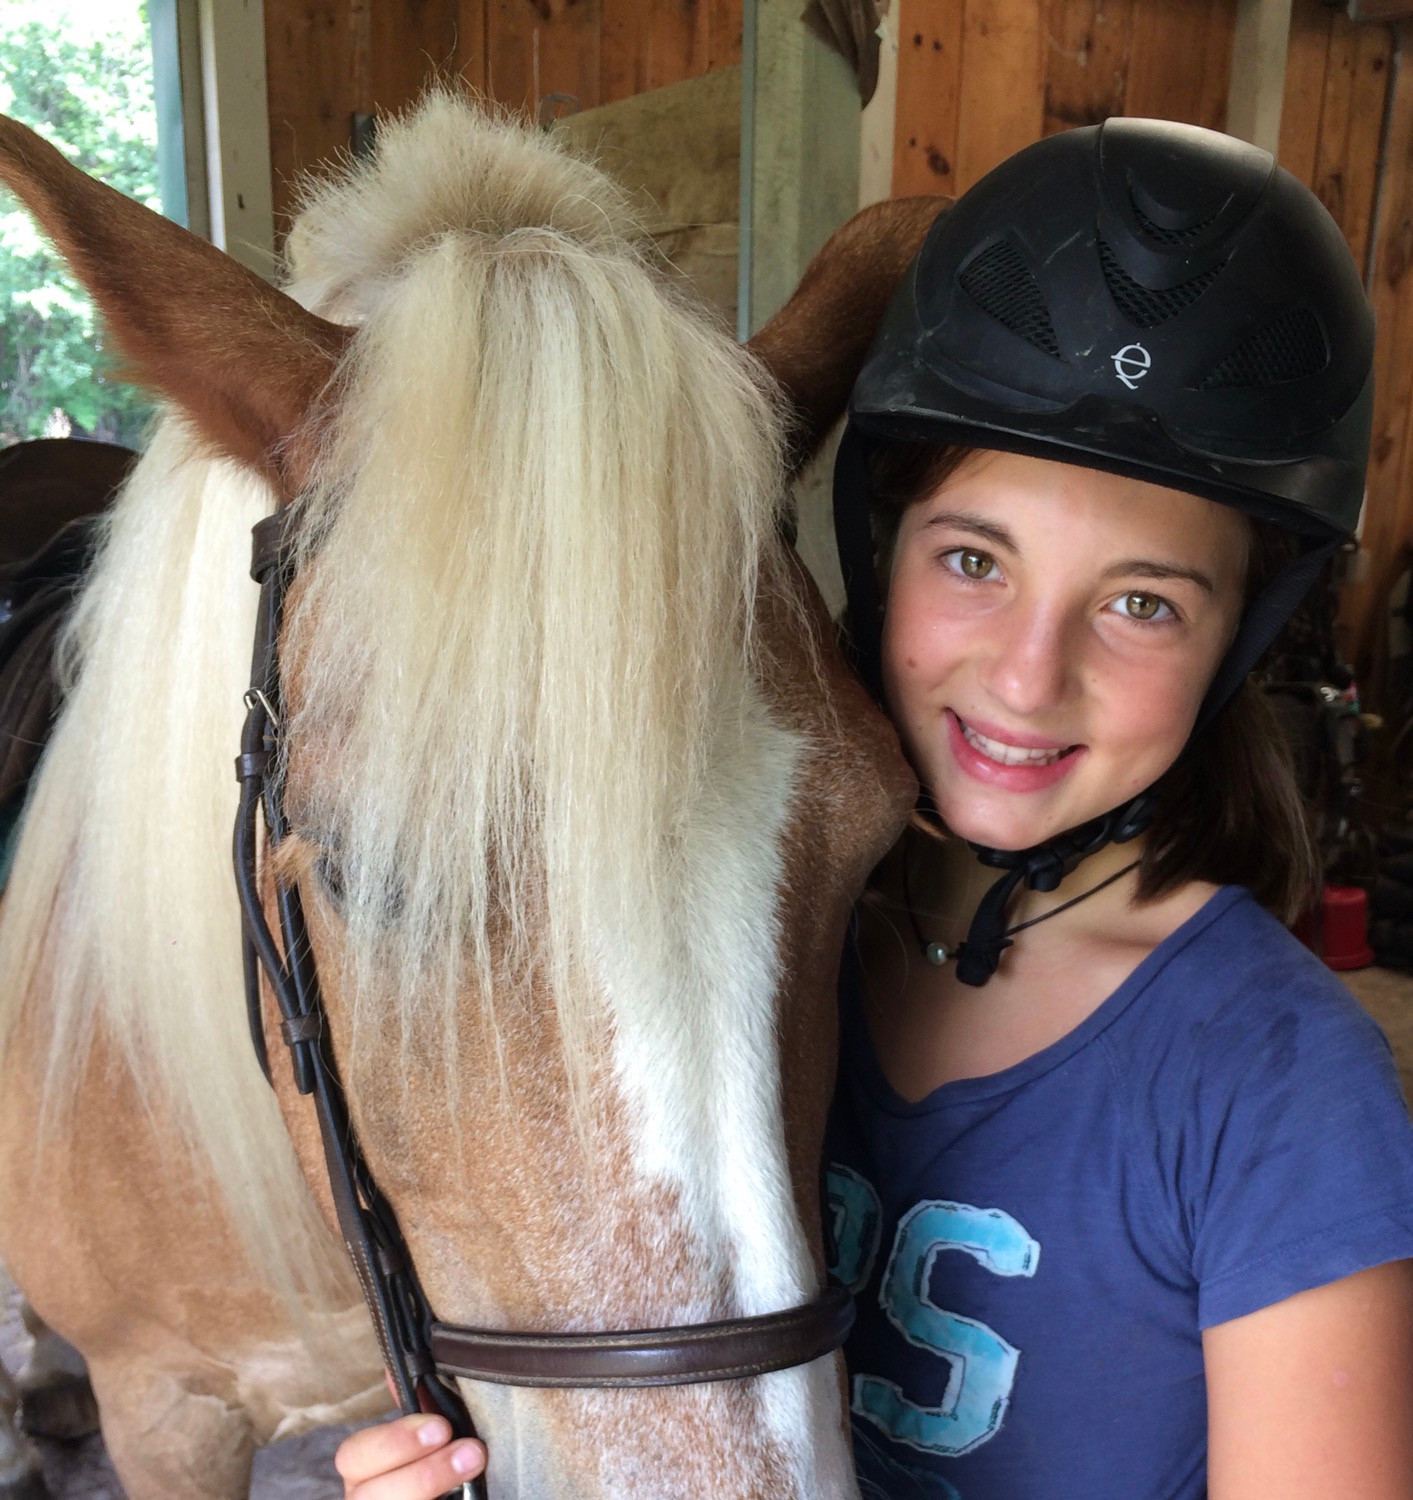 A Day in the Life! Equestrian Immersion